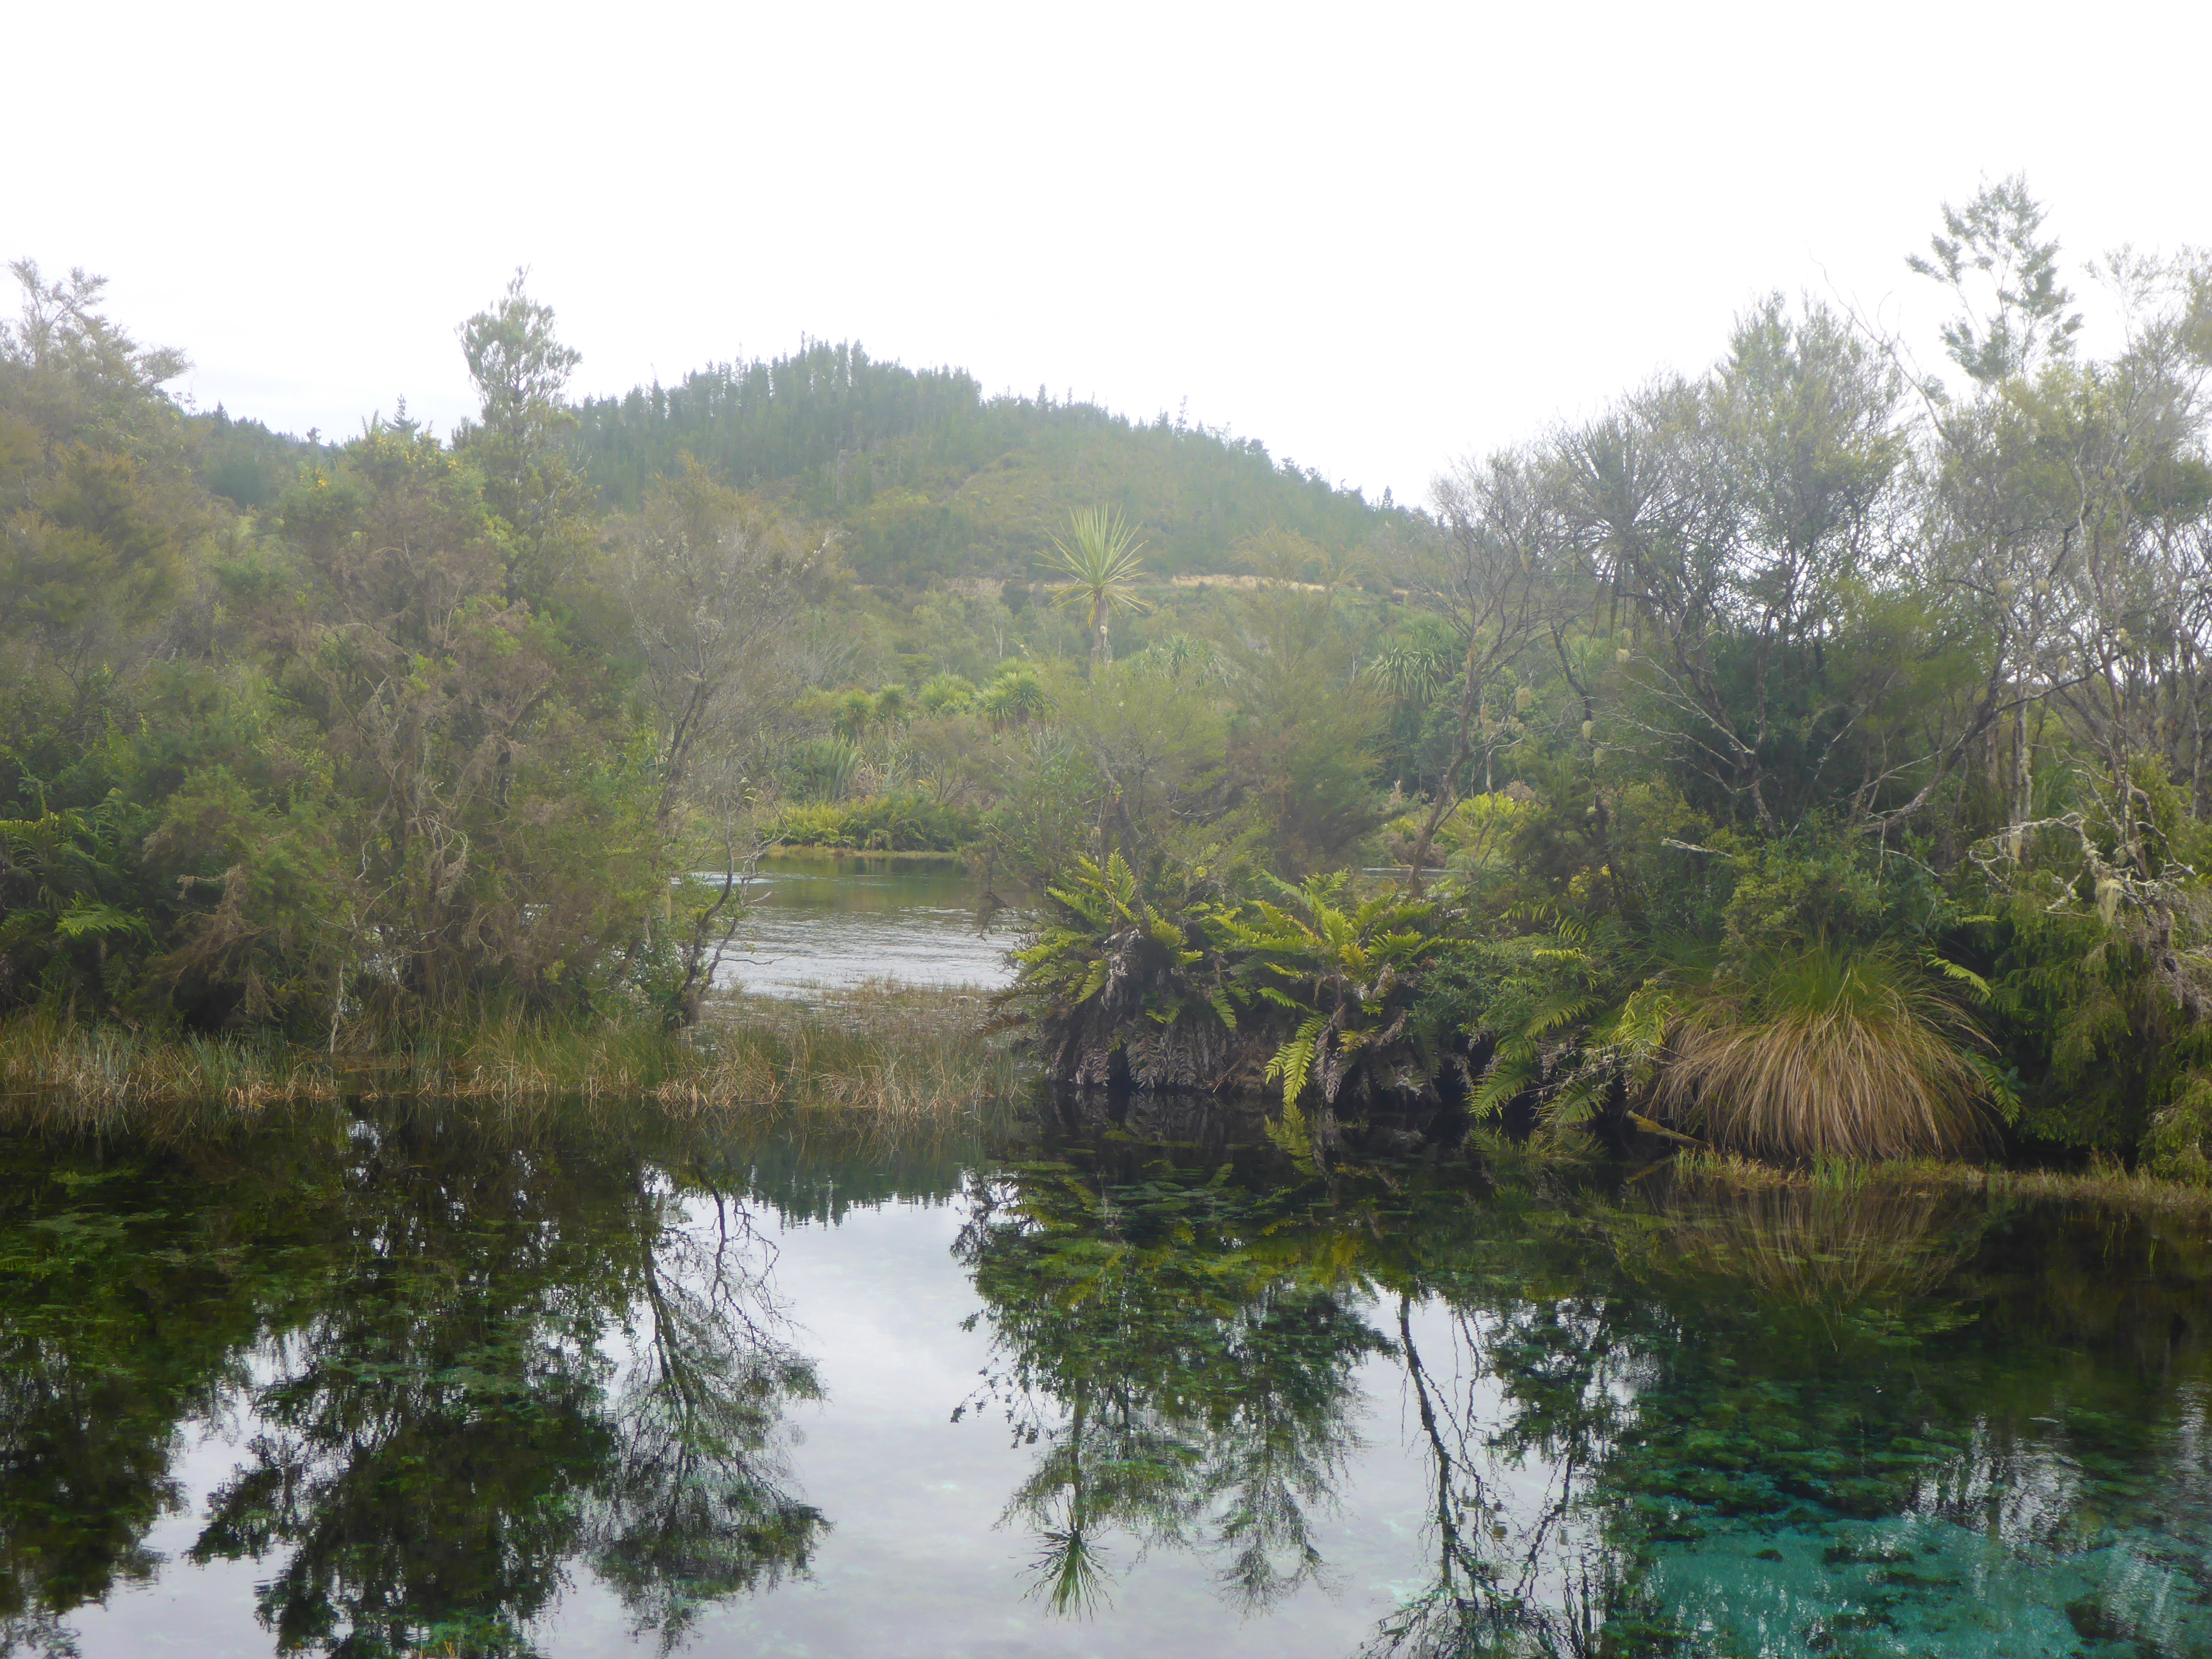 A scene at Waikoropupu Springs ;the water is said to be amongst the purest in the world